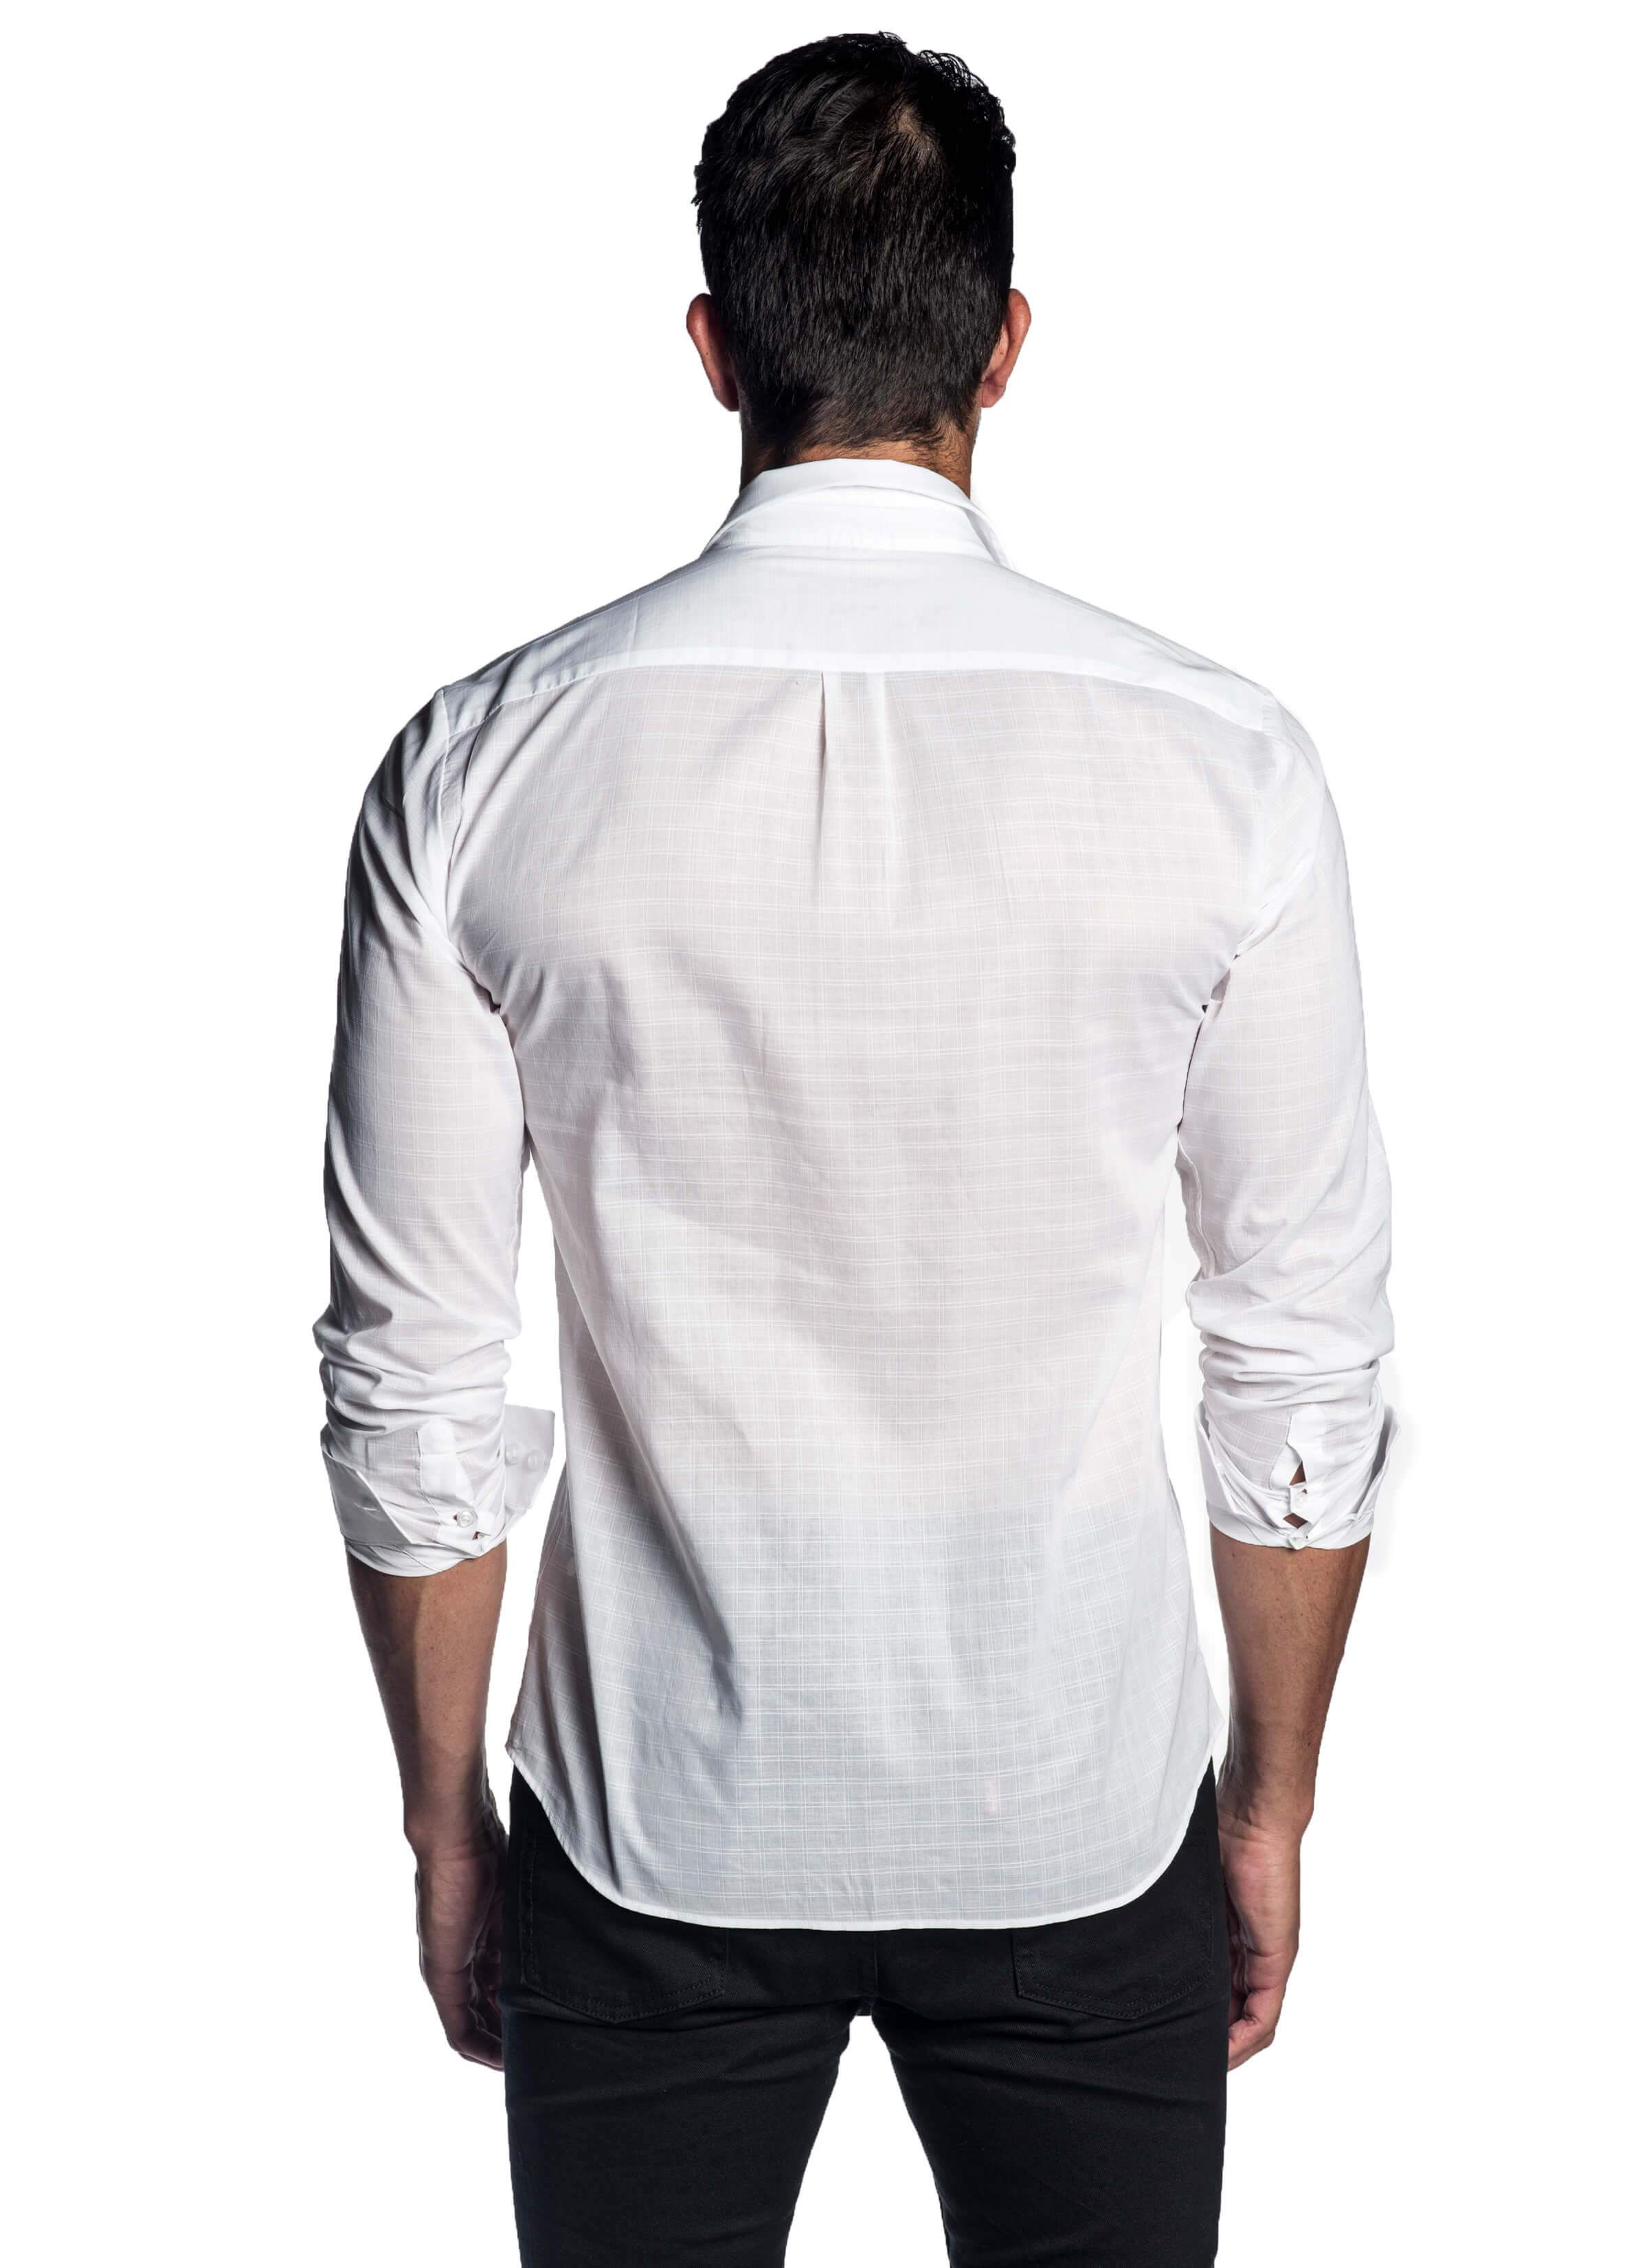 White Plaid Shirt for Men - back AH-T-2010 - Jared Lang